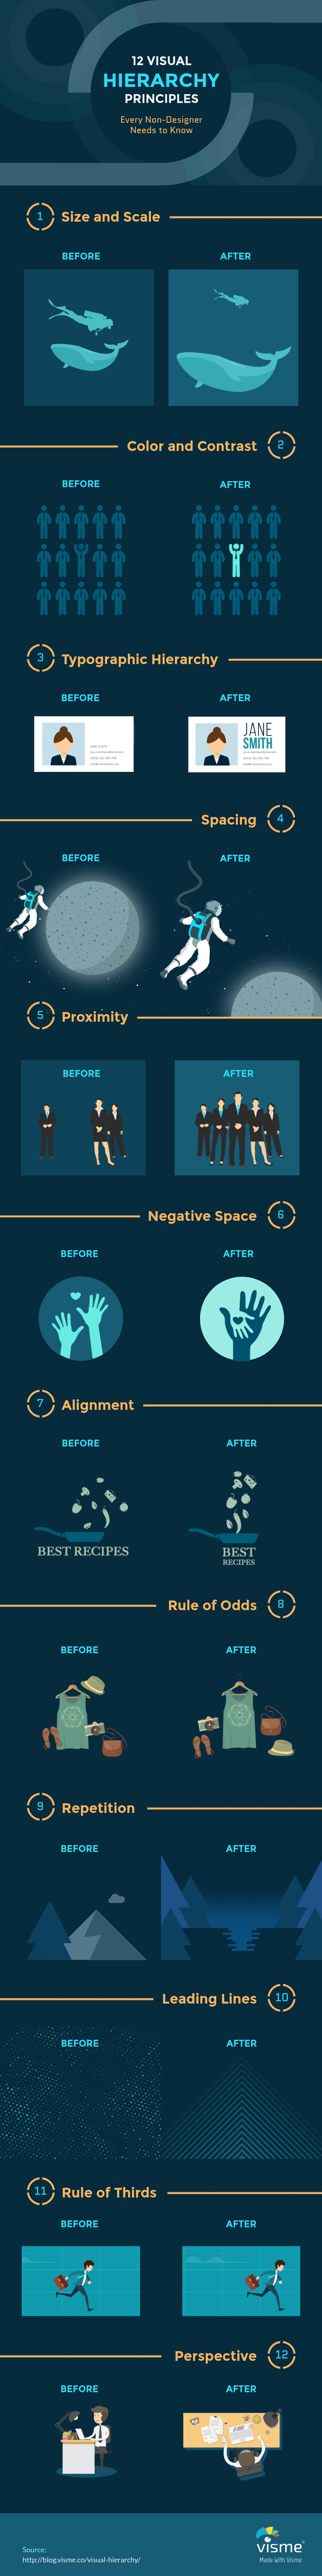 Awesome infographic ideas